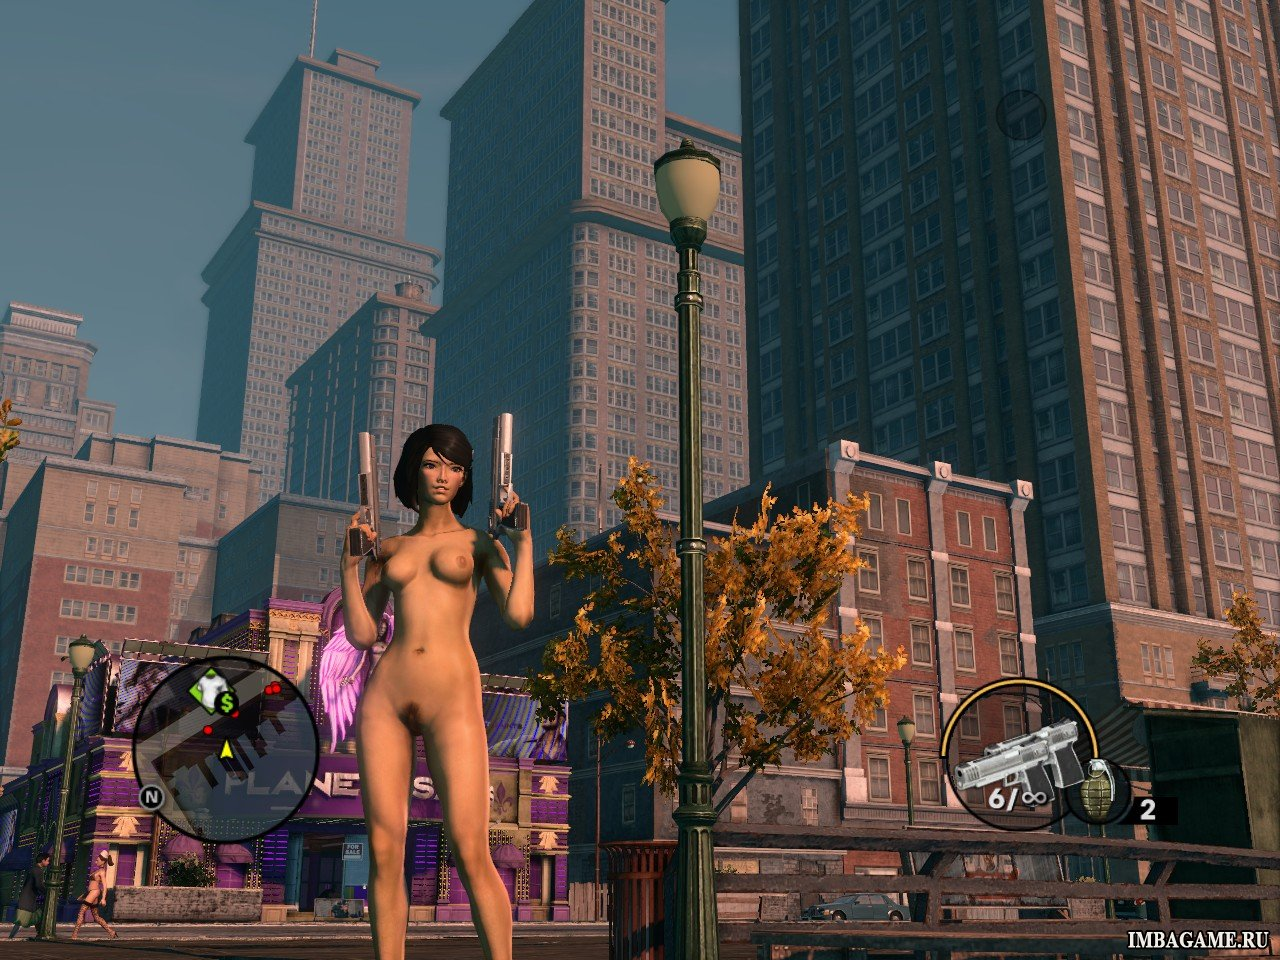 Nude mod saints row 4 vagina uncensored  nude pics